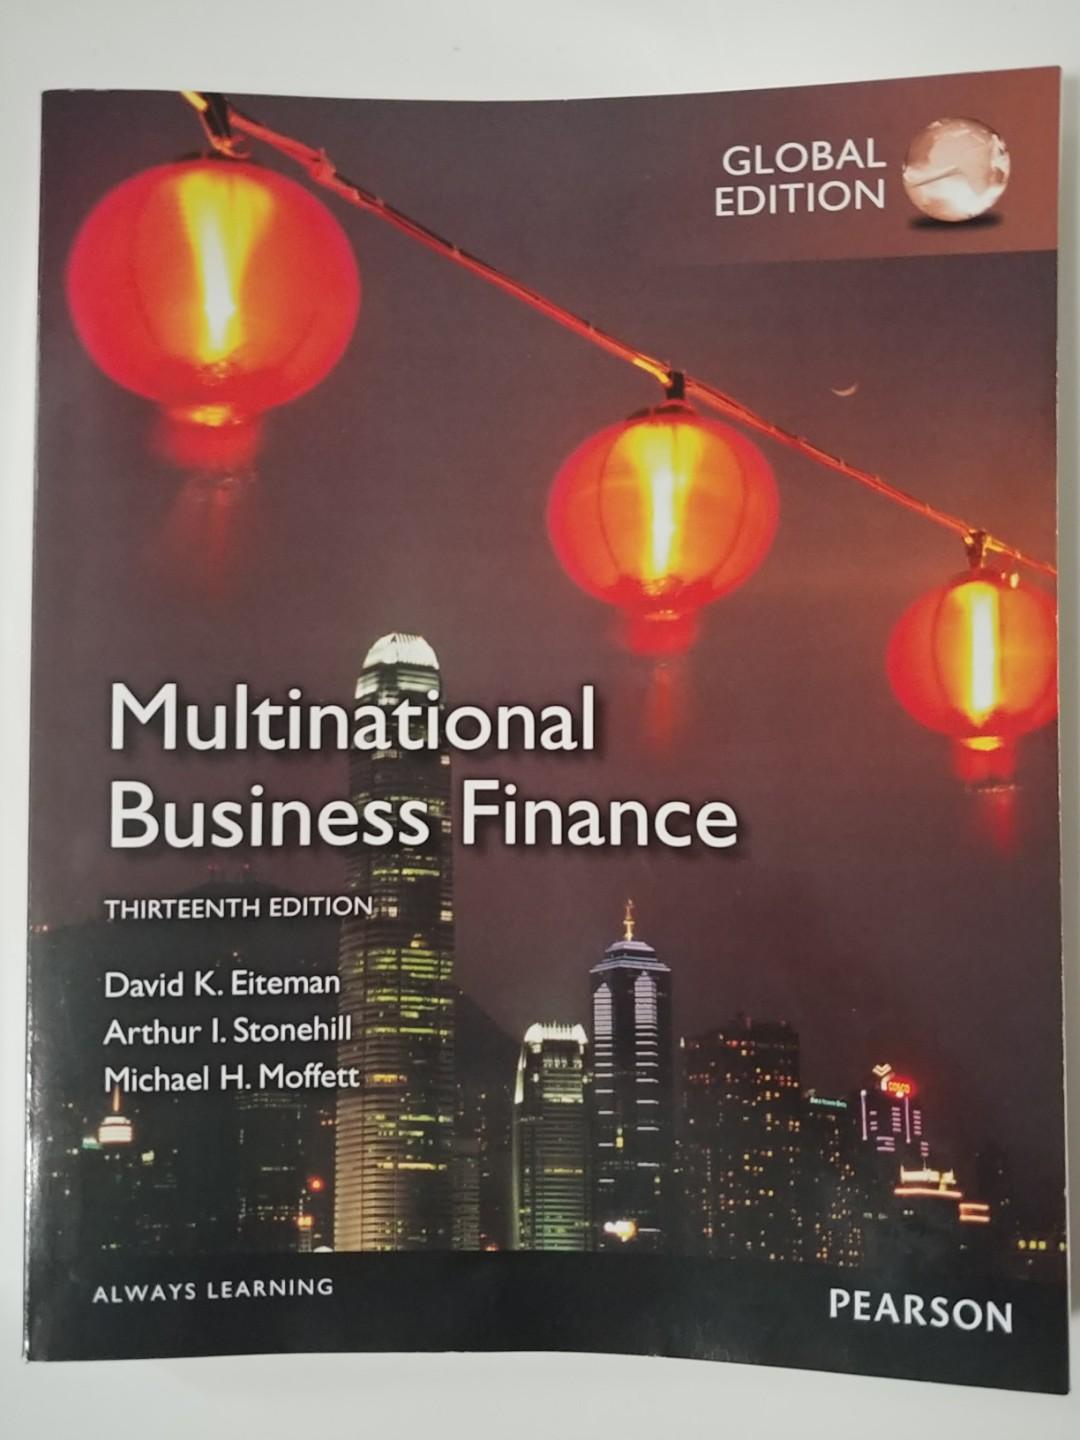 Multinational Business Finance 13th Edition [Textbook]